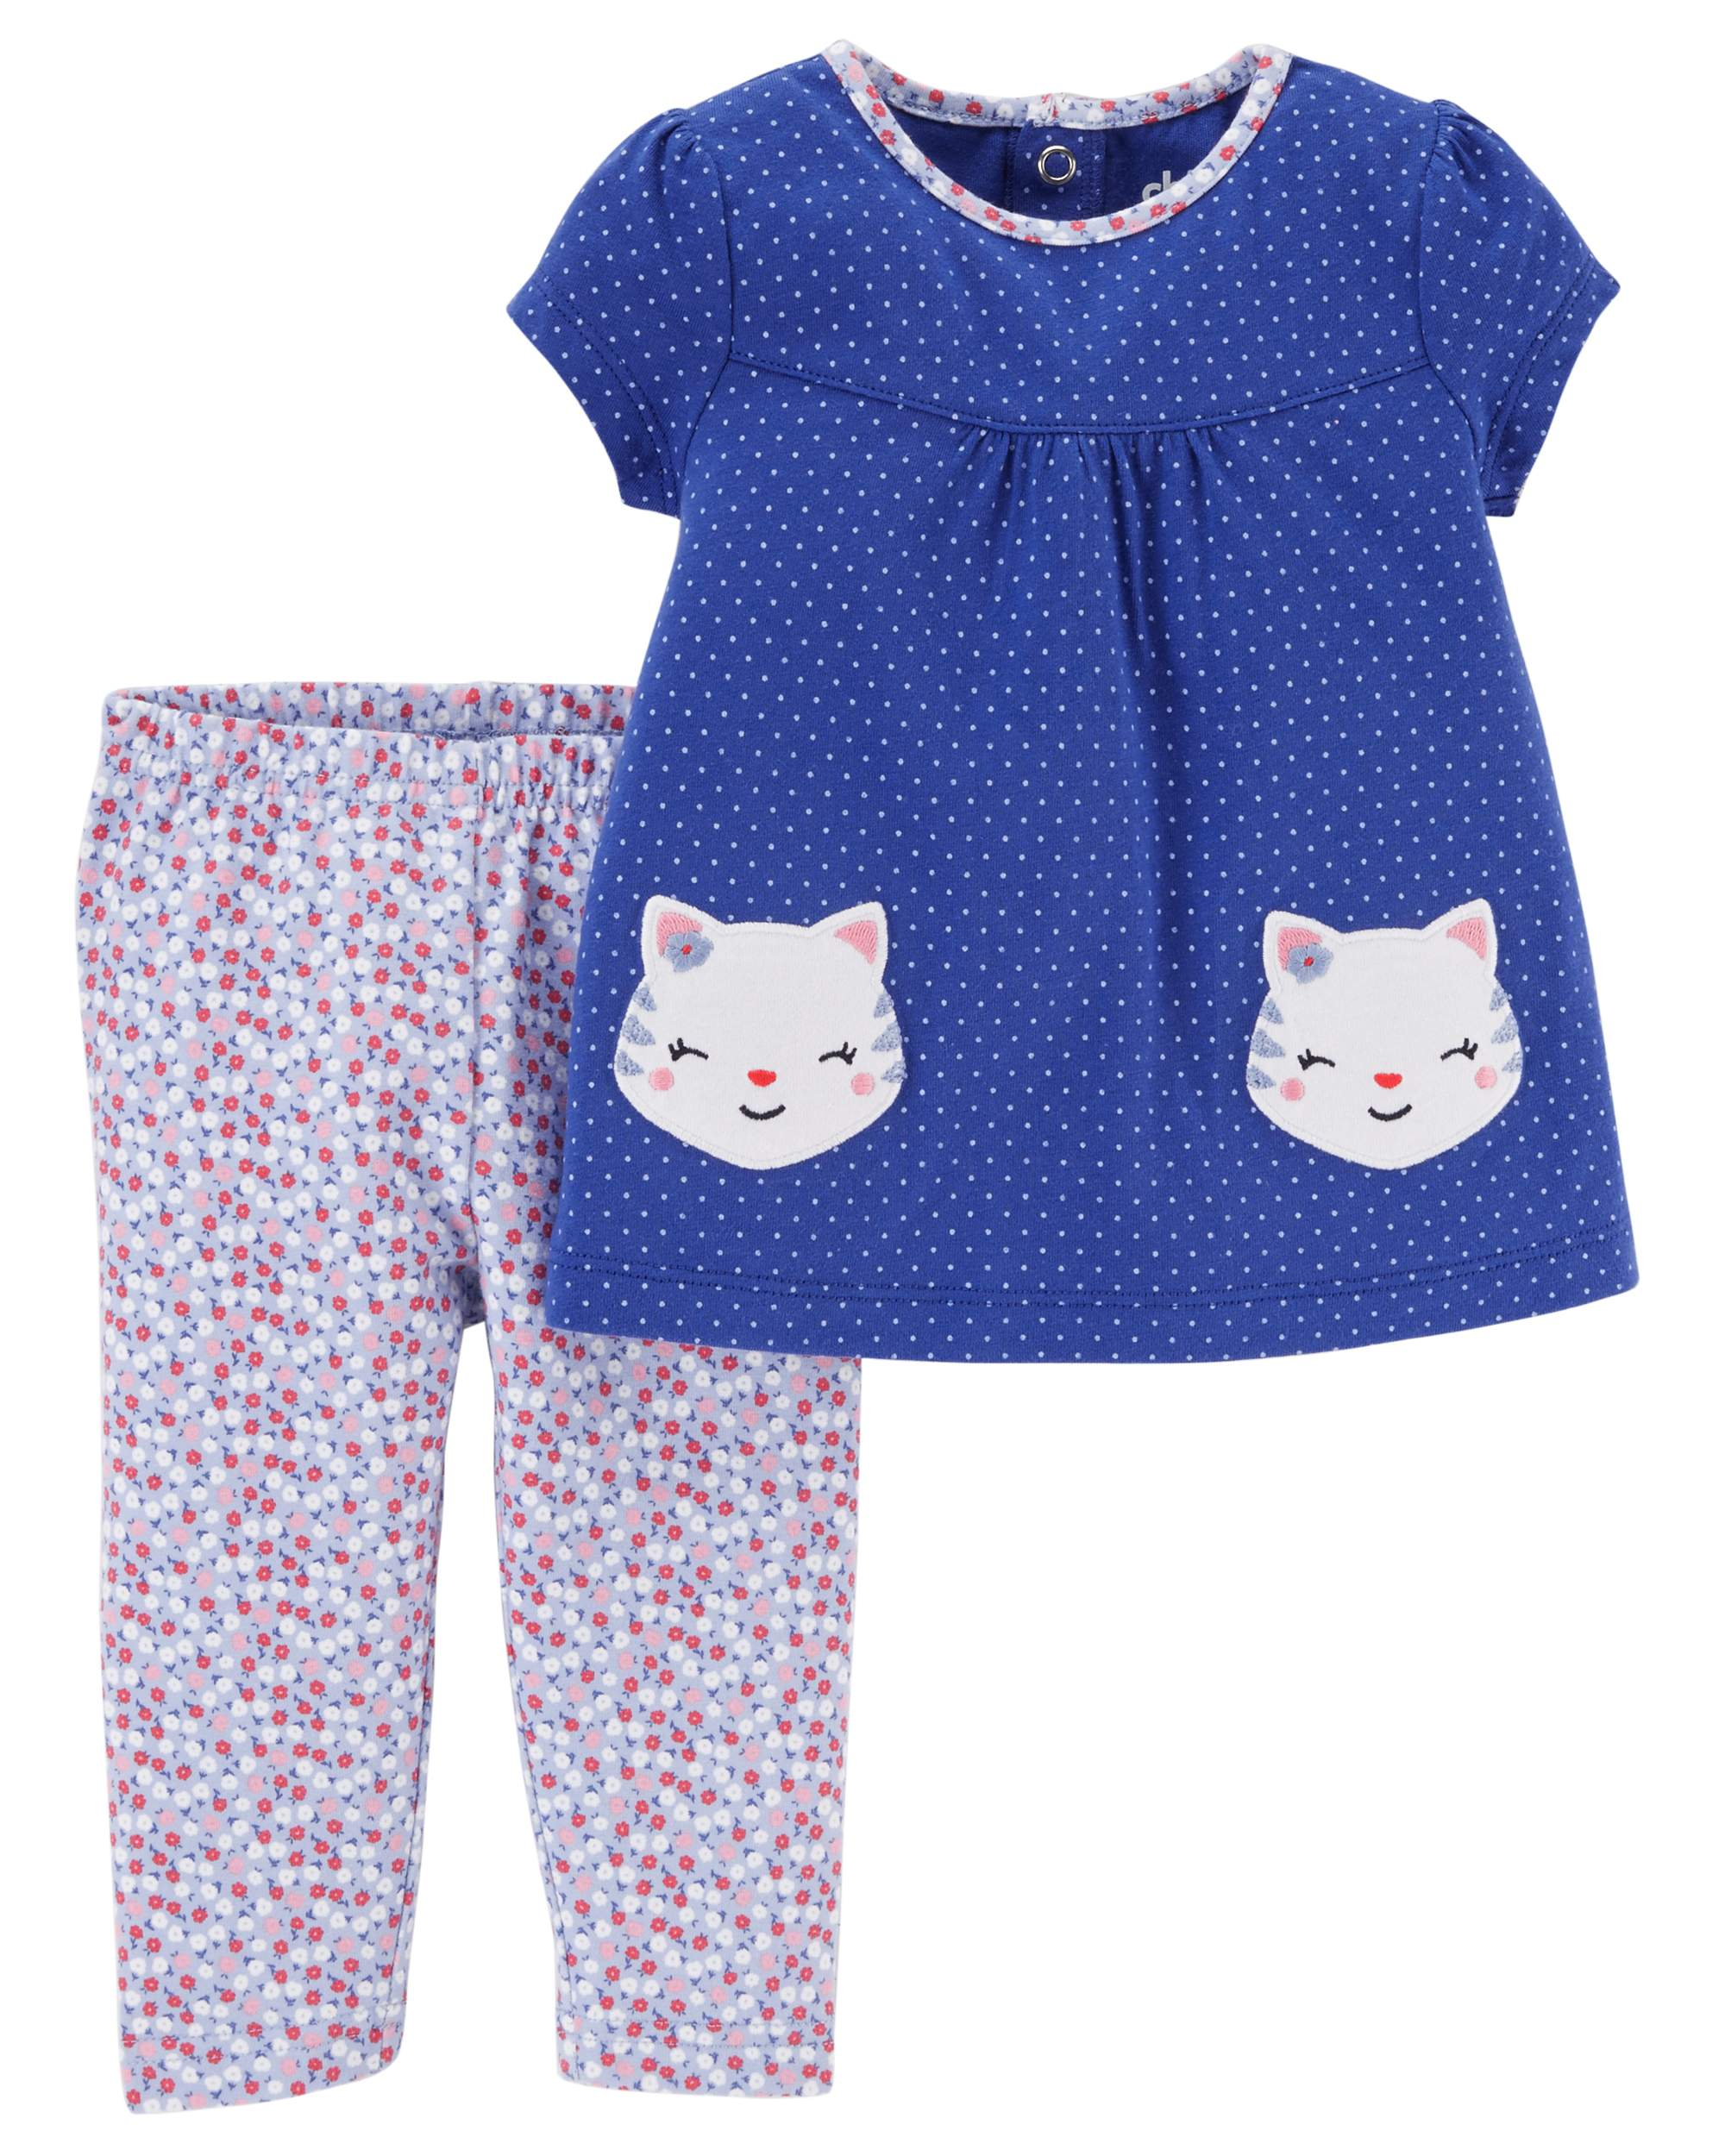 Baby Girl Short Sleeve Tunic & Leggings, 2pc Outfit Set